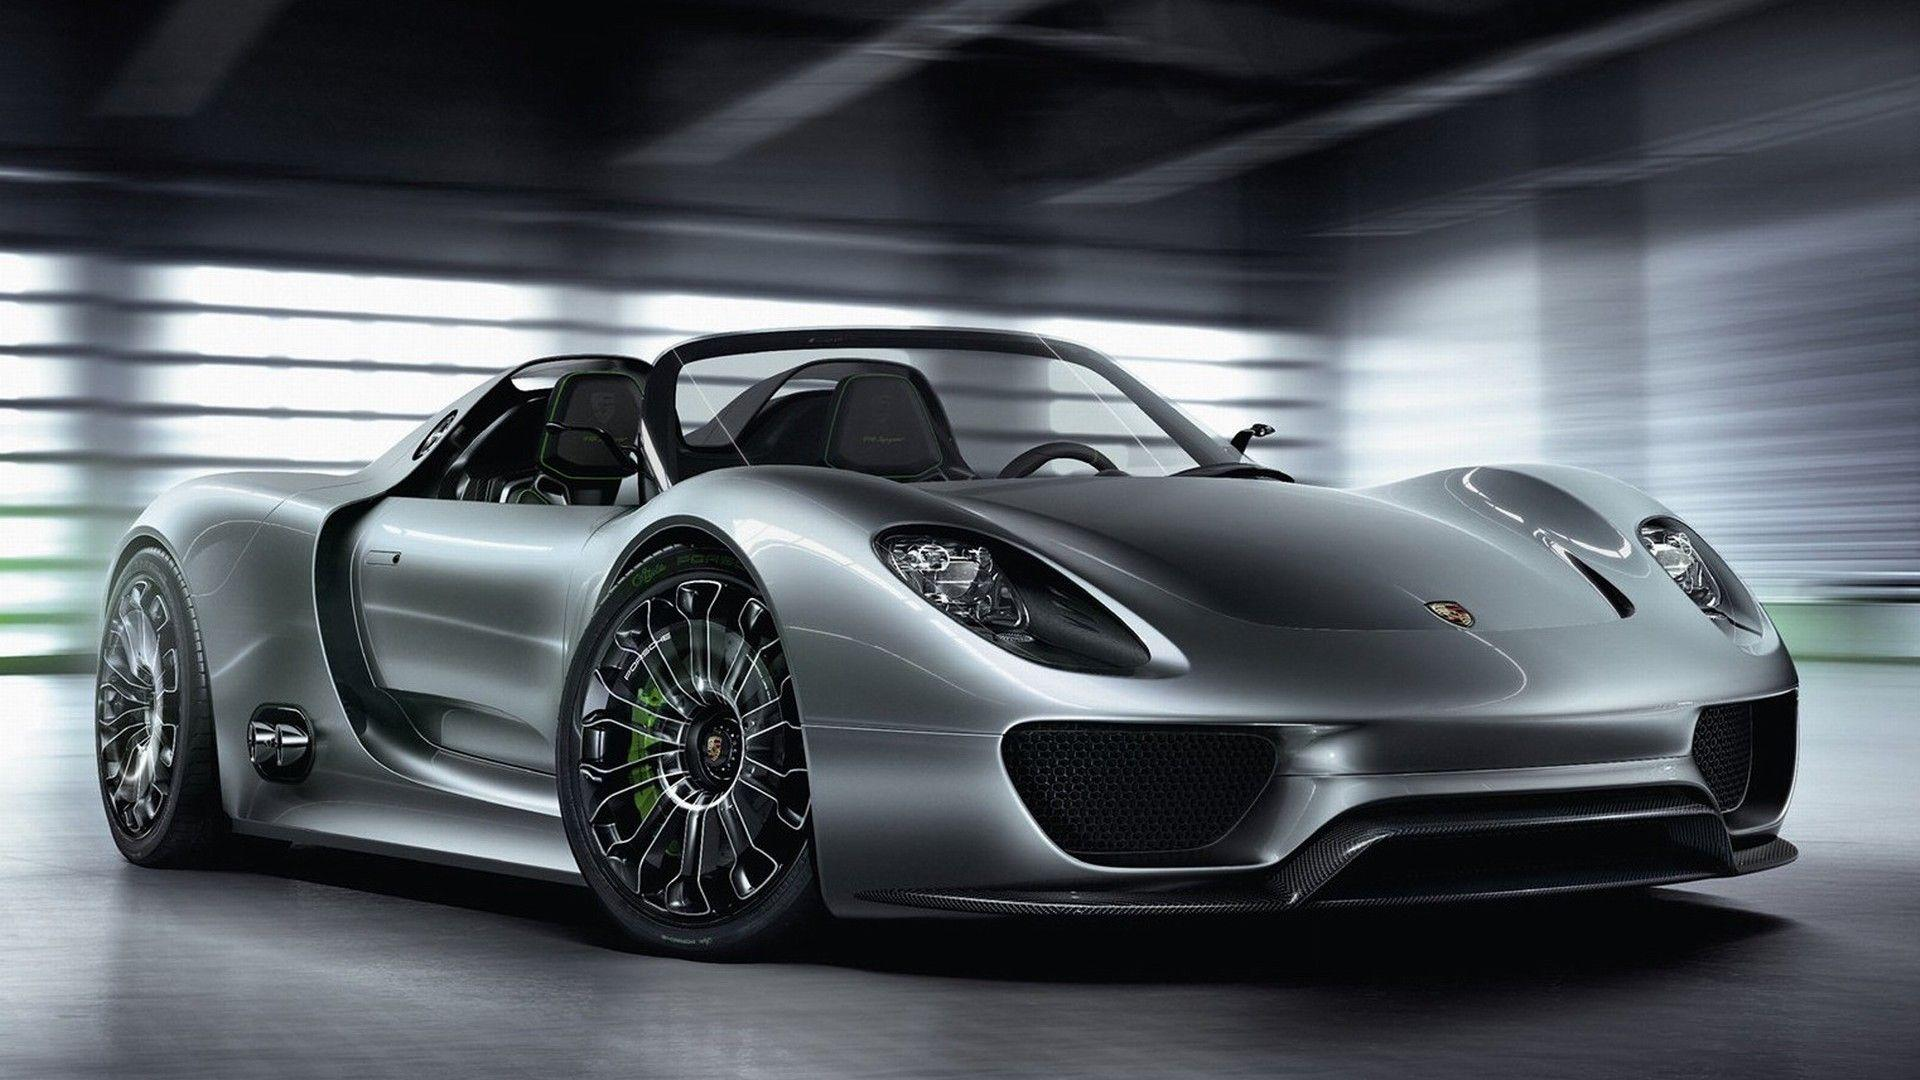 15 excellent hd porsche wallpapers hdwallsourcecom hdwallsource